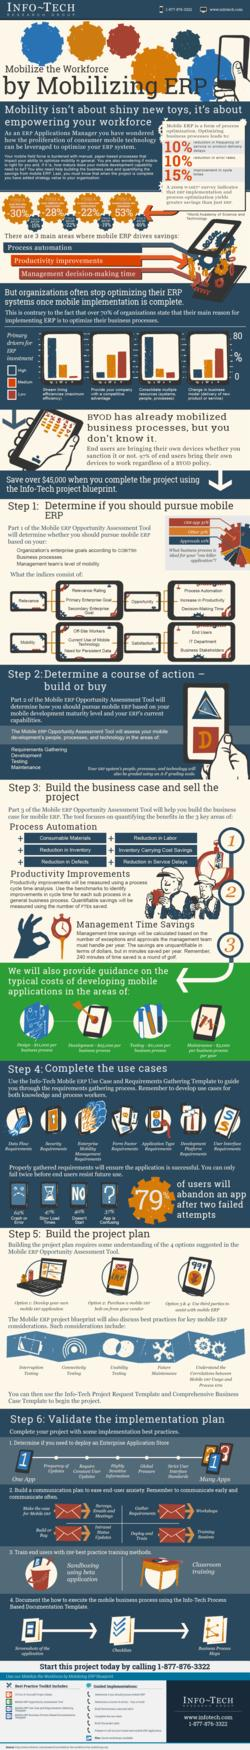 Mobilize the Workforce by Mobilizing ERP thumbnail